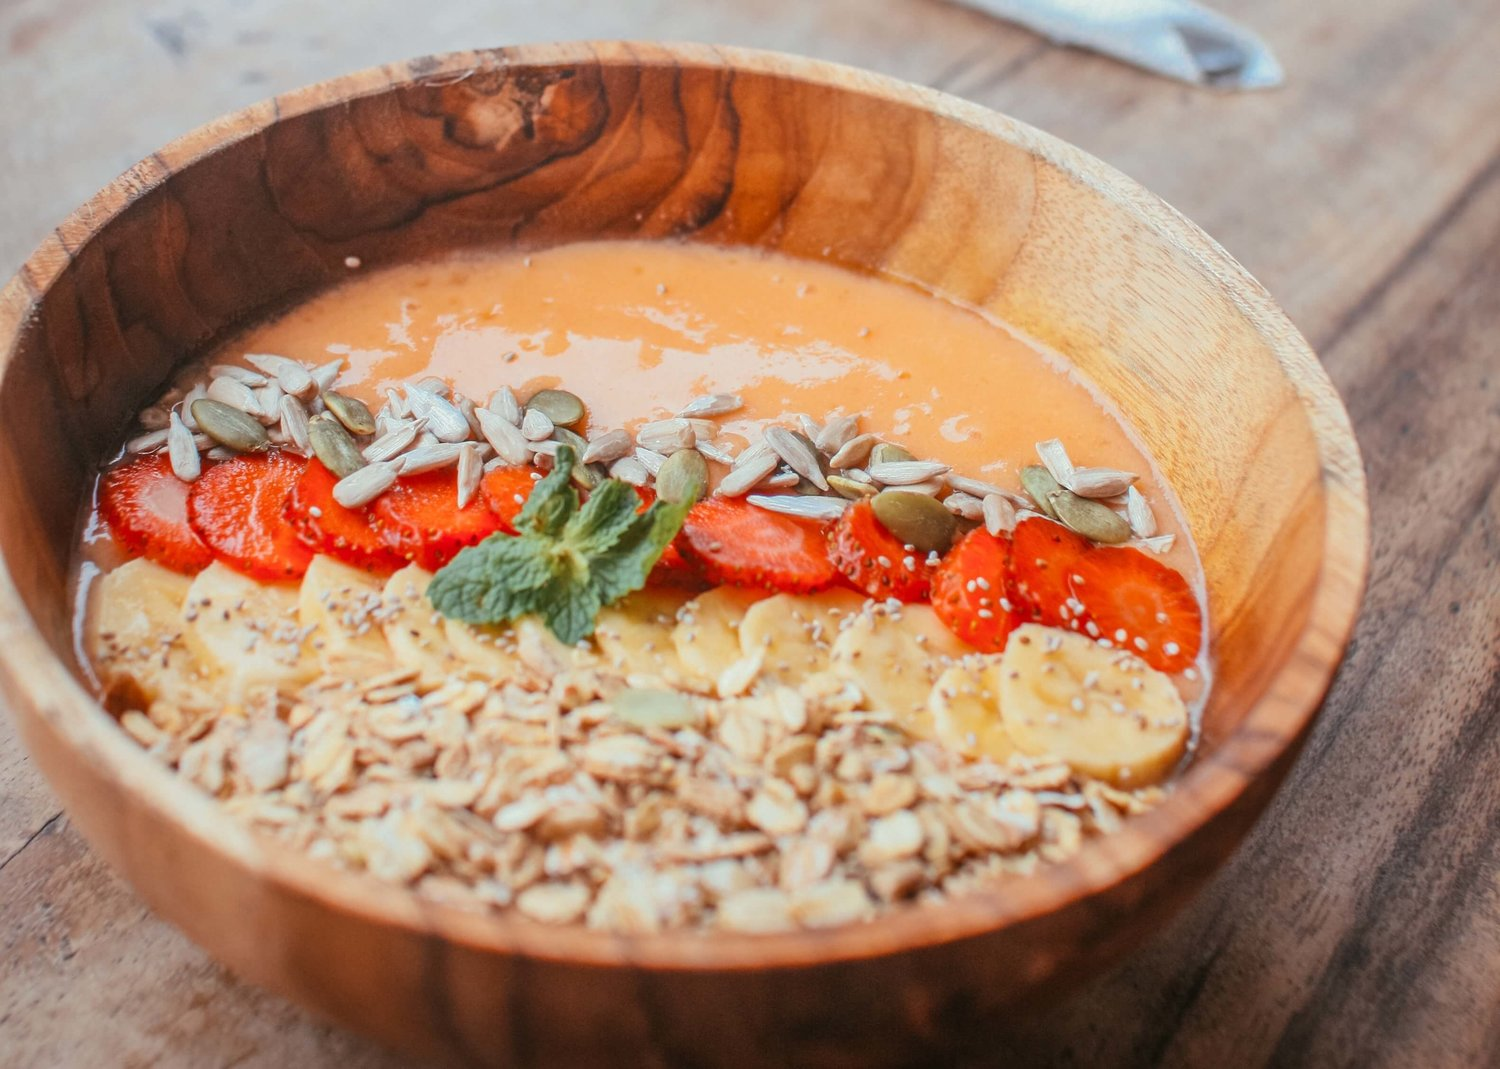 food-your-thouht-smoothiebowl.jpg